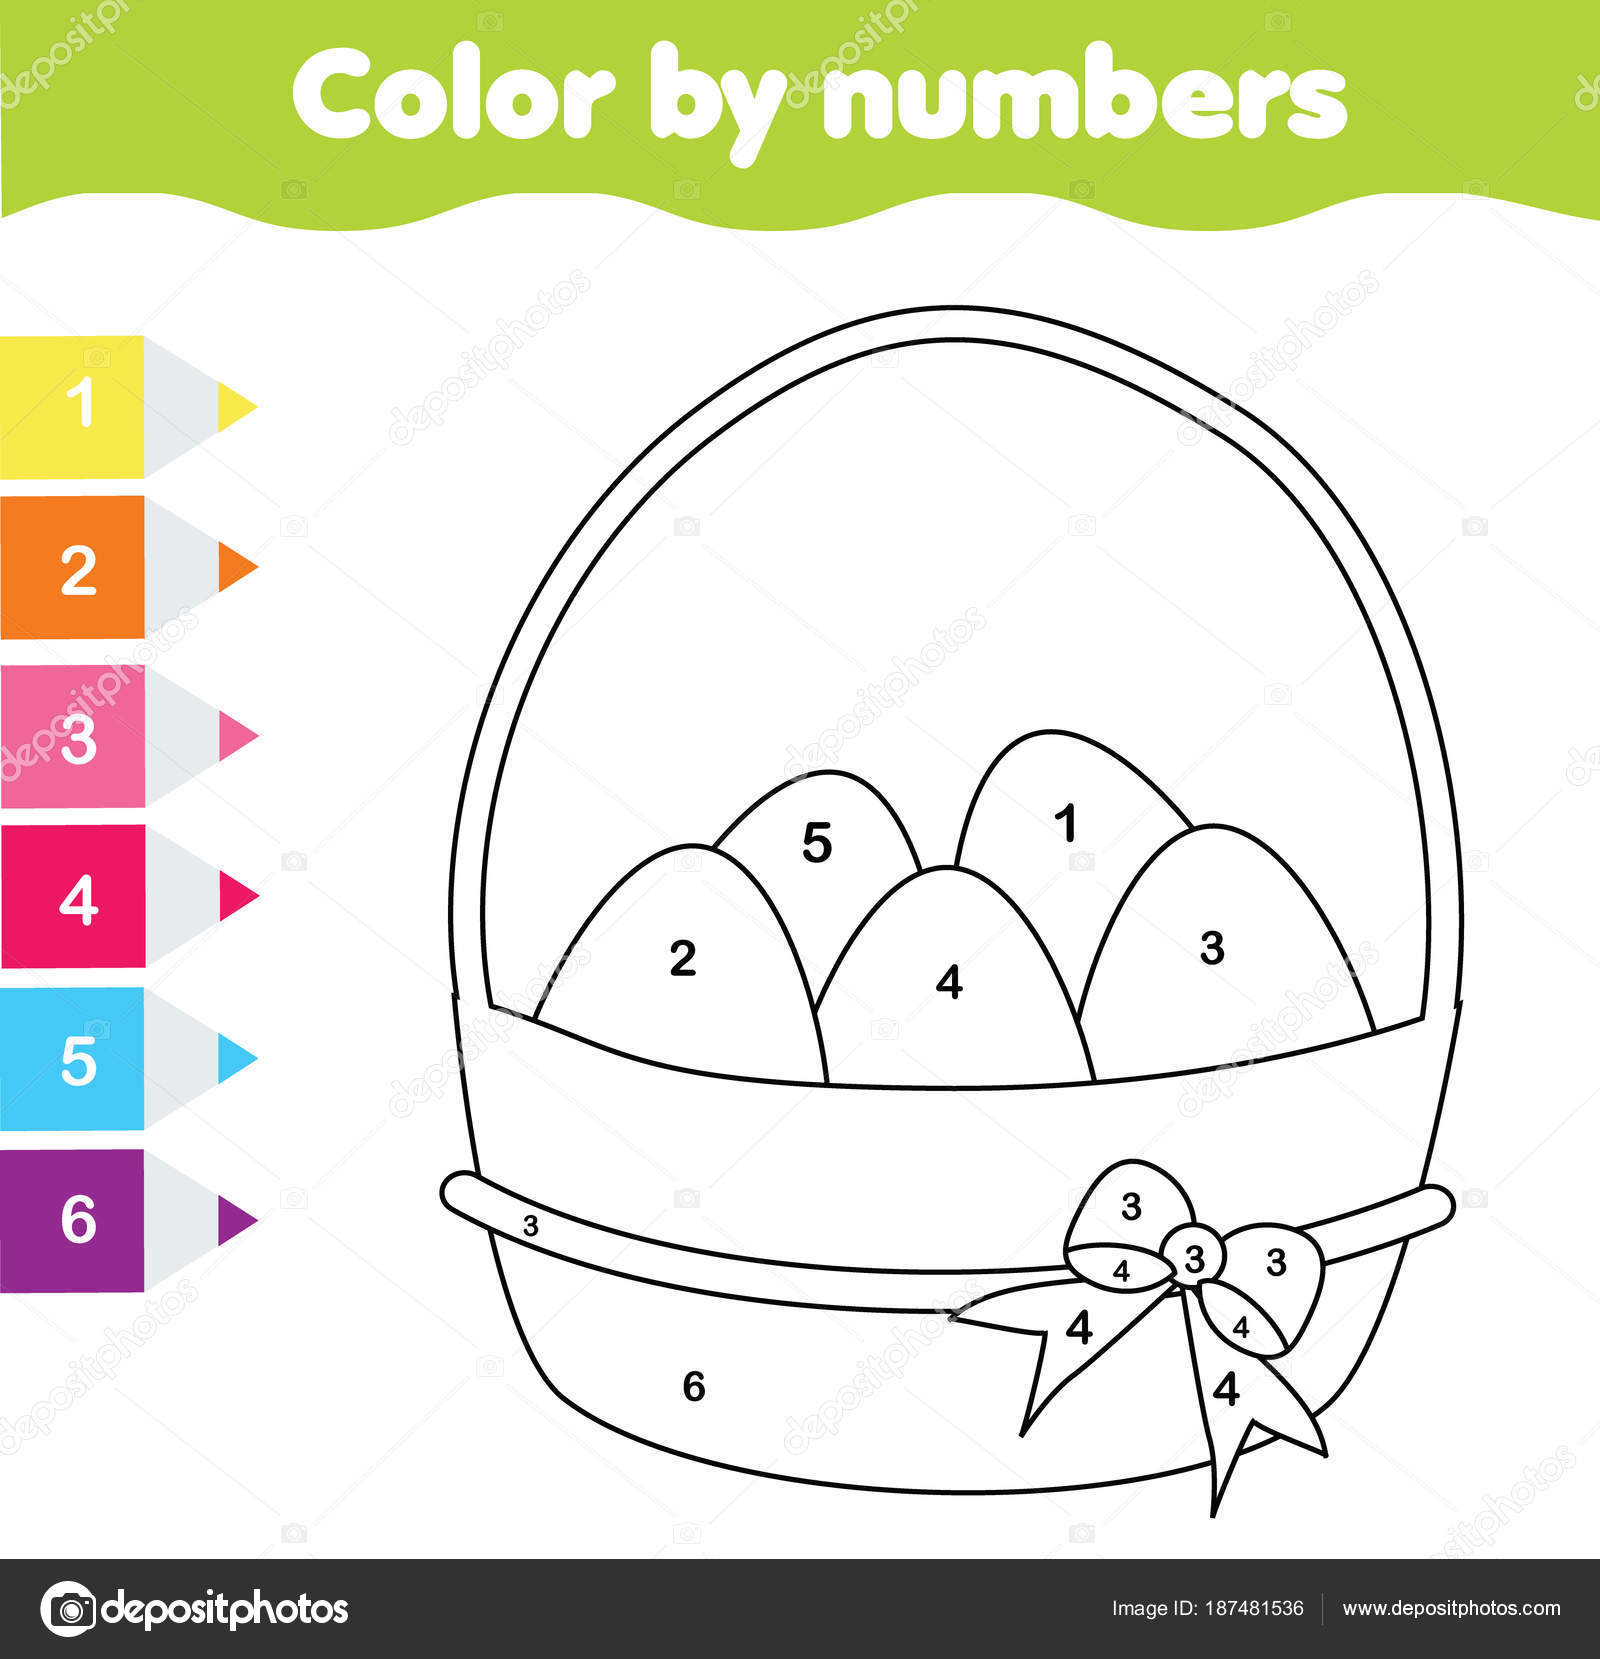 photo about Color by Number Easter Printable named Paint through selection coloring internet pages for grownups Easter drawing